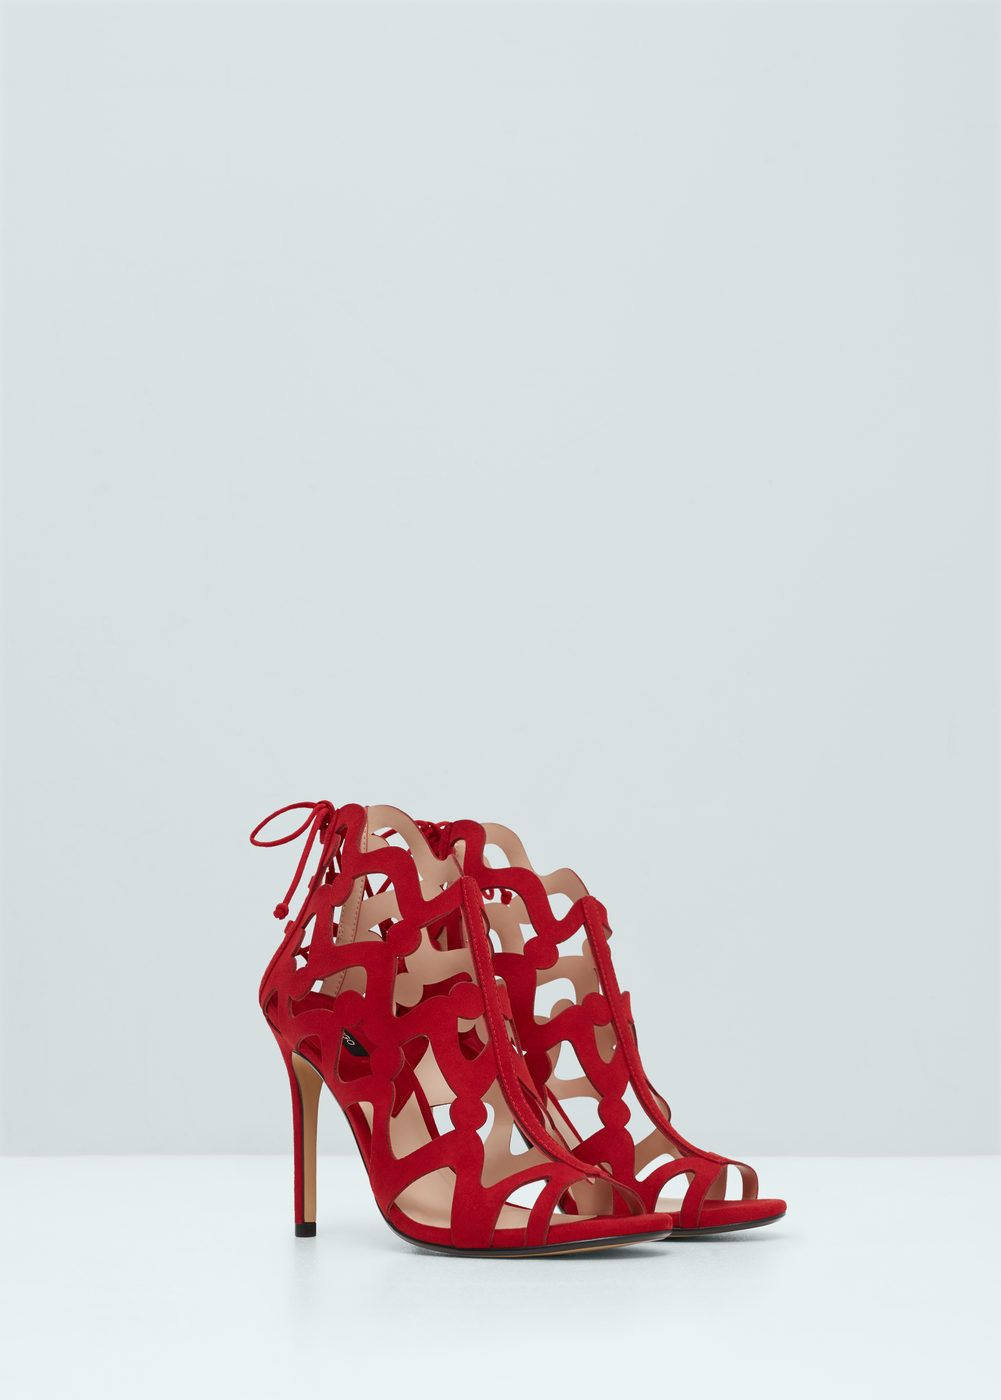 Sandals shoes usa - Perforated Design Sandals